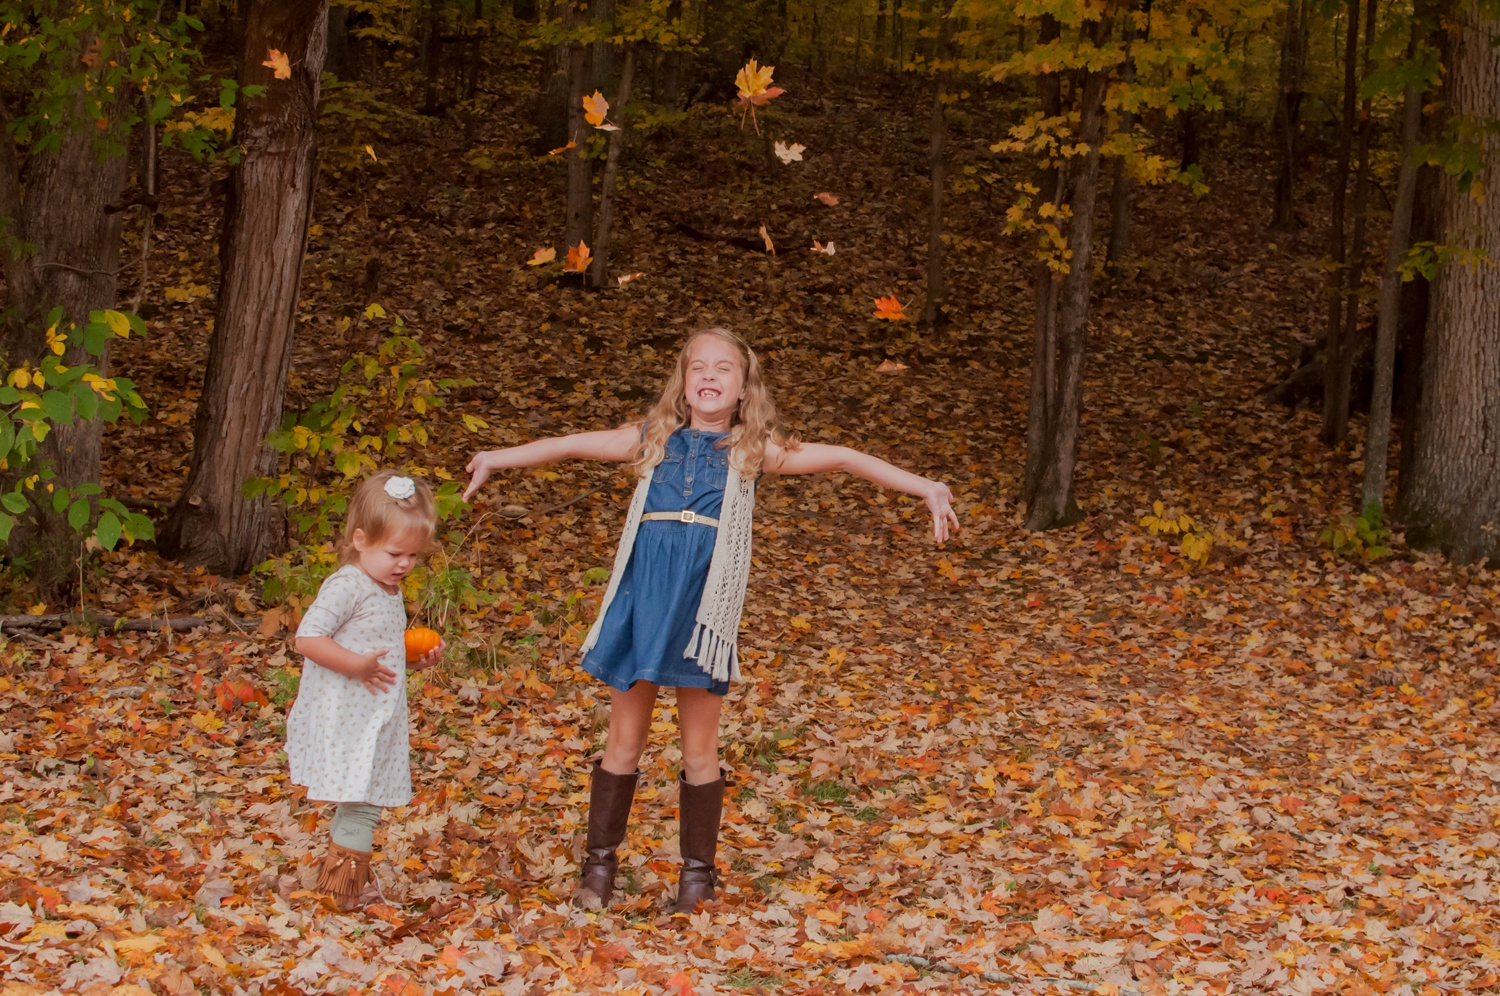 paducah child photography amsw photography girl throwing leaves